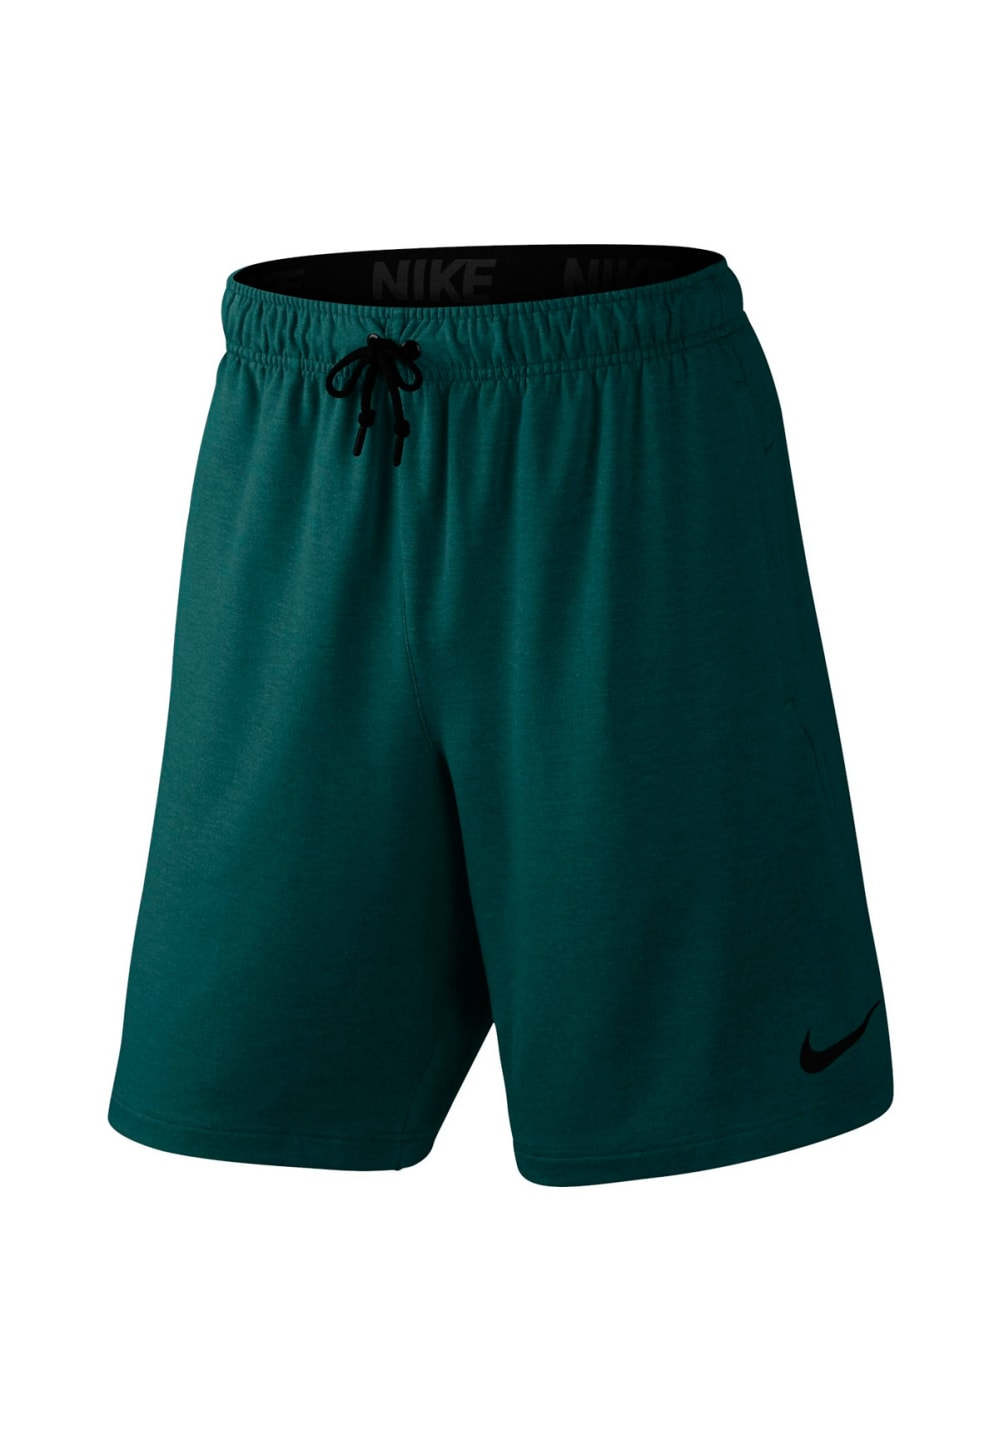 Nike Dry Training Shorts Hommes Accessoires running